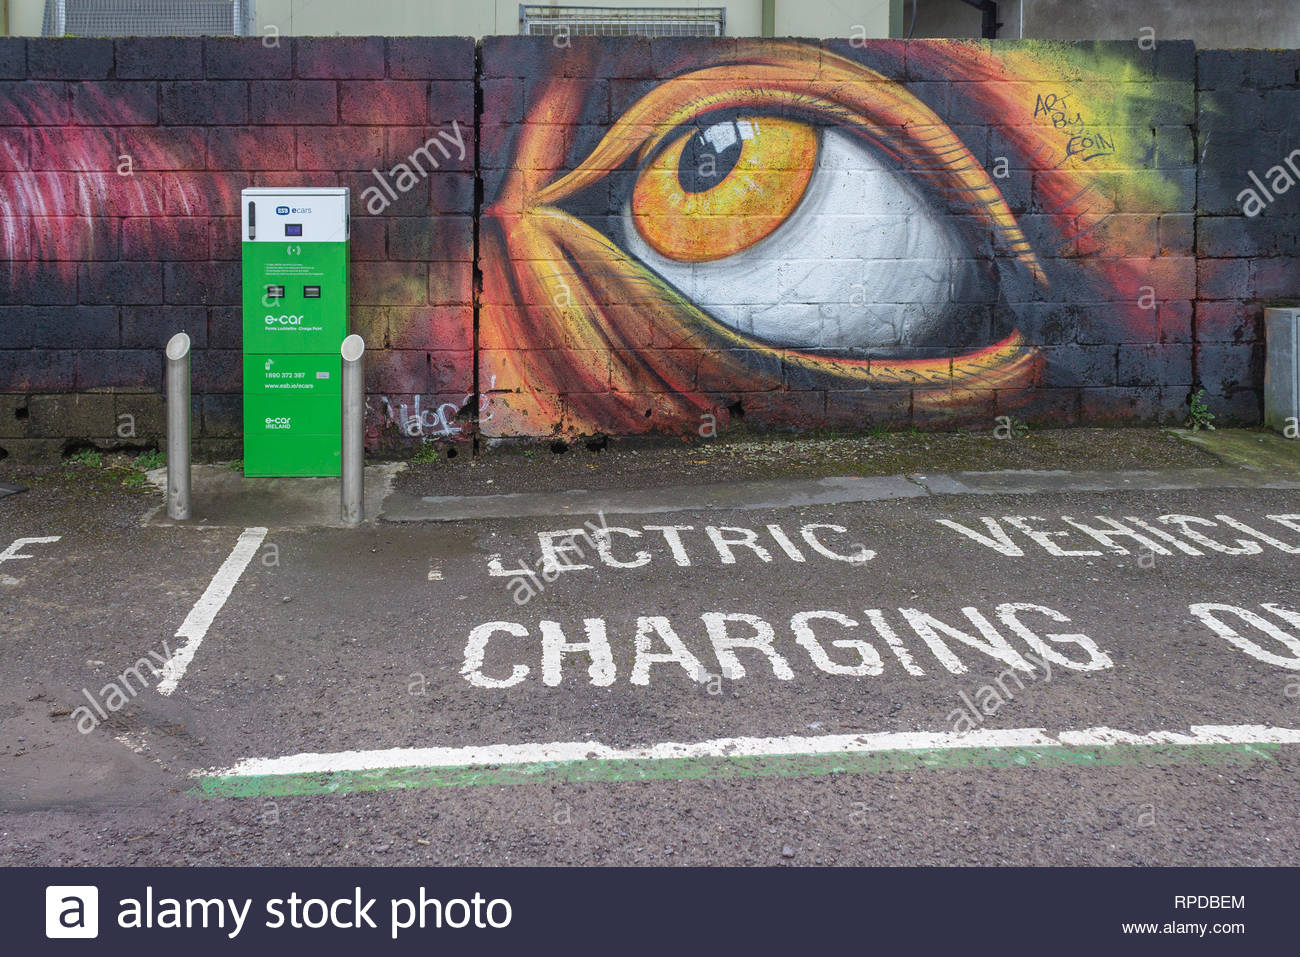 electric car charging point overlooked by a large painted eye - Stock Image